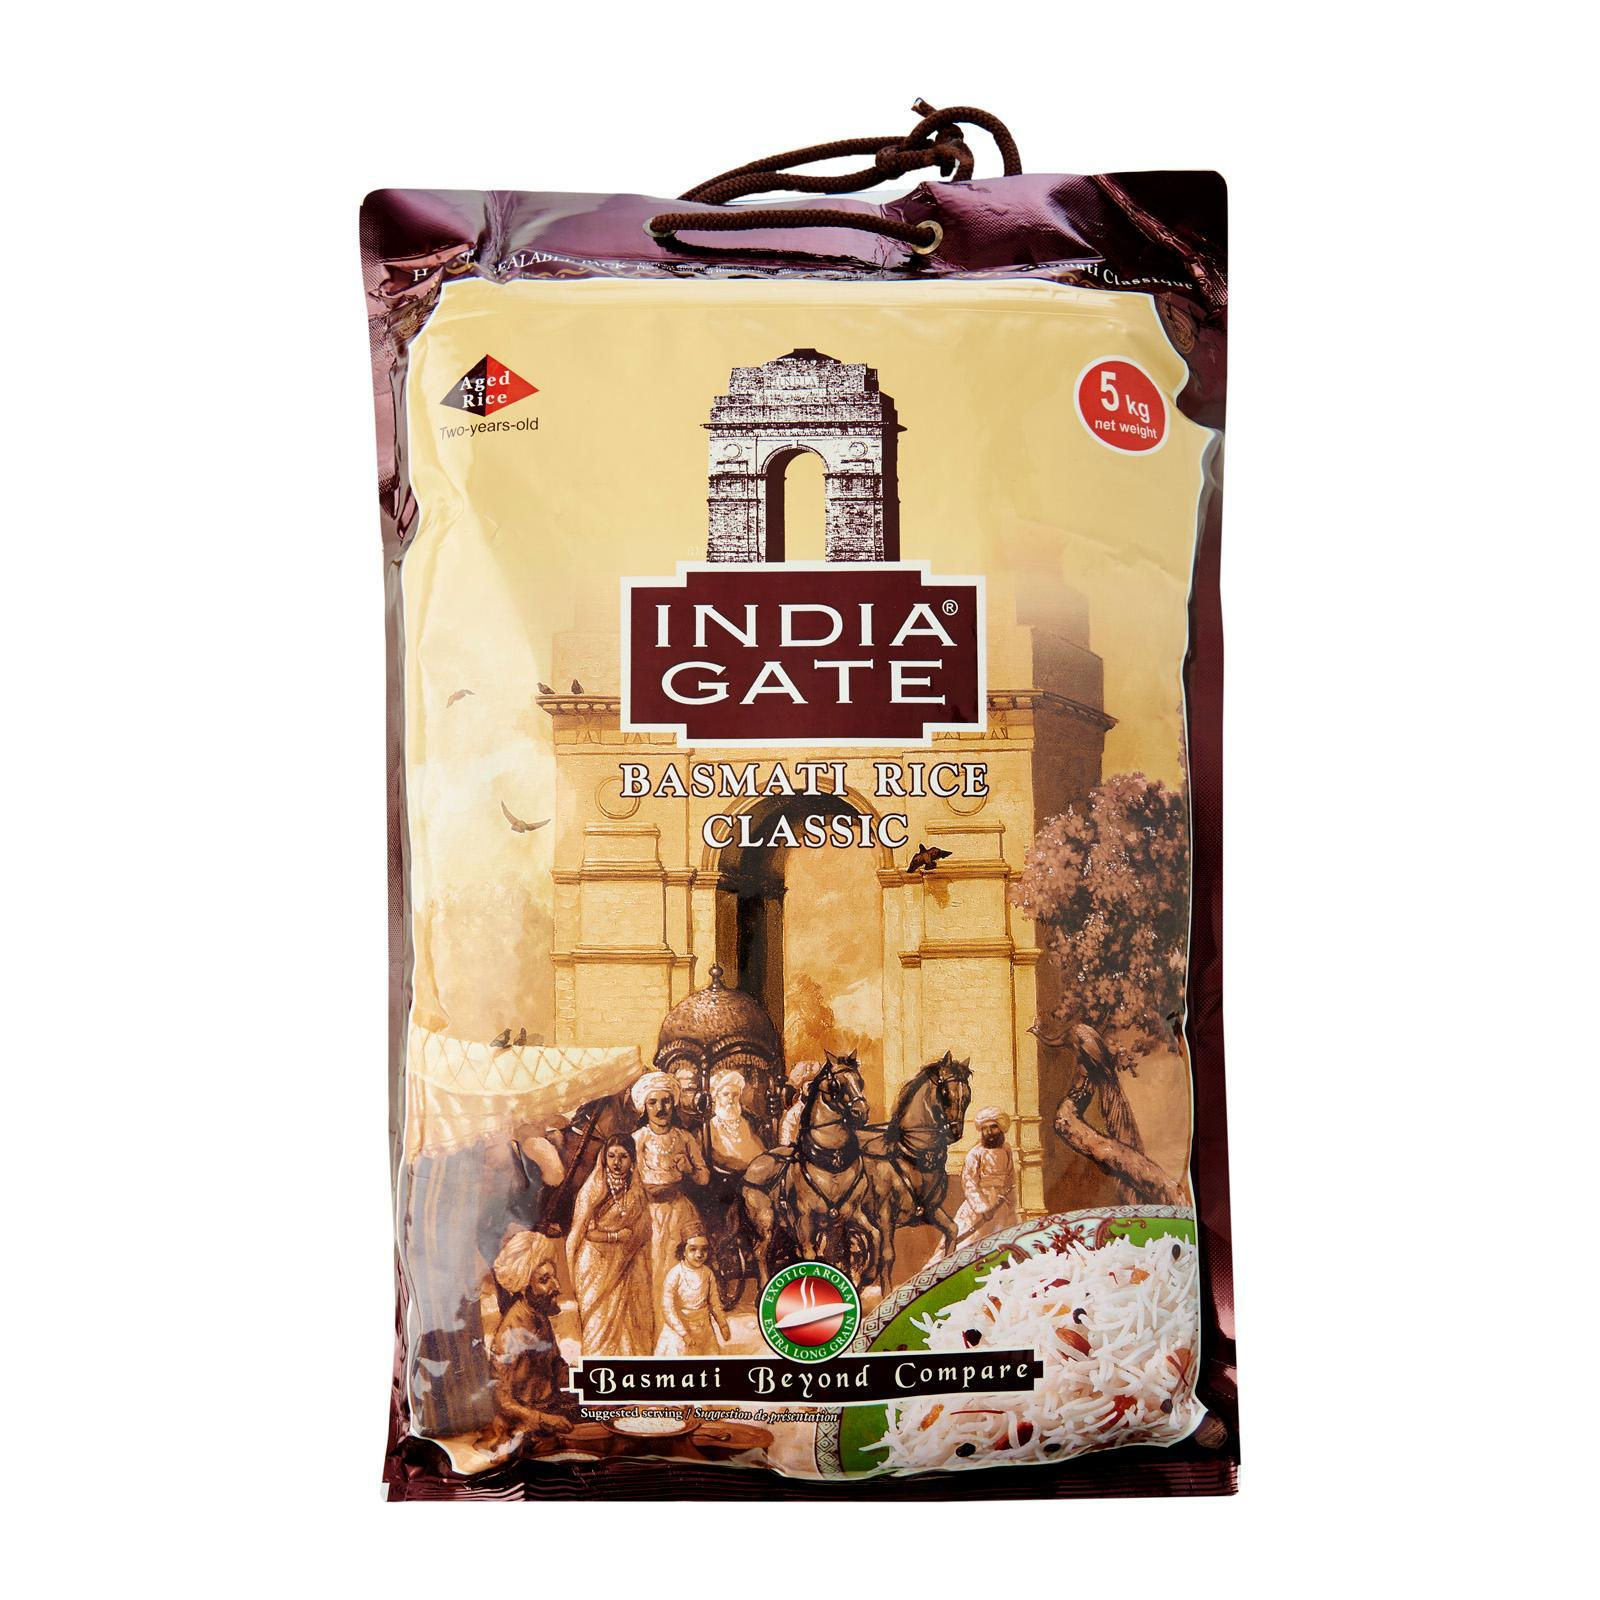 Indiagate Classic Basmati Rice 5 Kg,2 Years Aged, Grown In India Farmland, Handpicked, Tasty And Suitable For Daily Consumption, Gmo Free, 99% Fat Free, Cholesterol Free, Salt Free, Gluten Free, Low Gi Suitable For Diabetics By Merlion Mart.